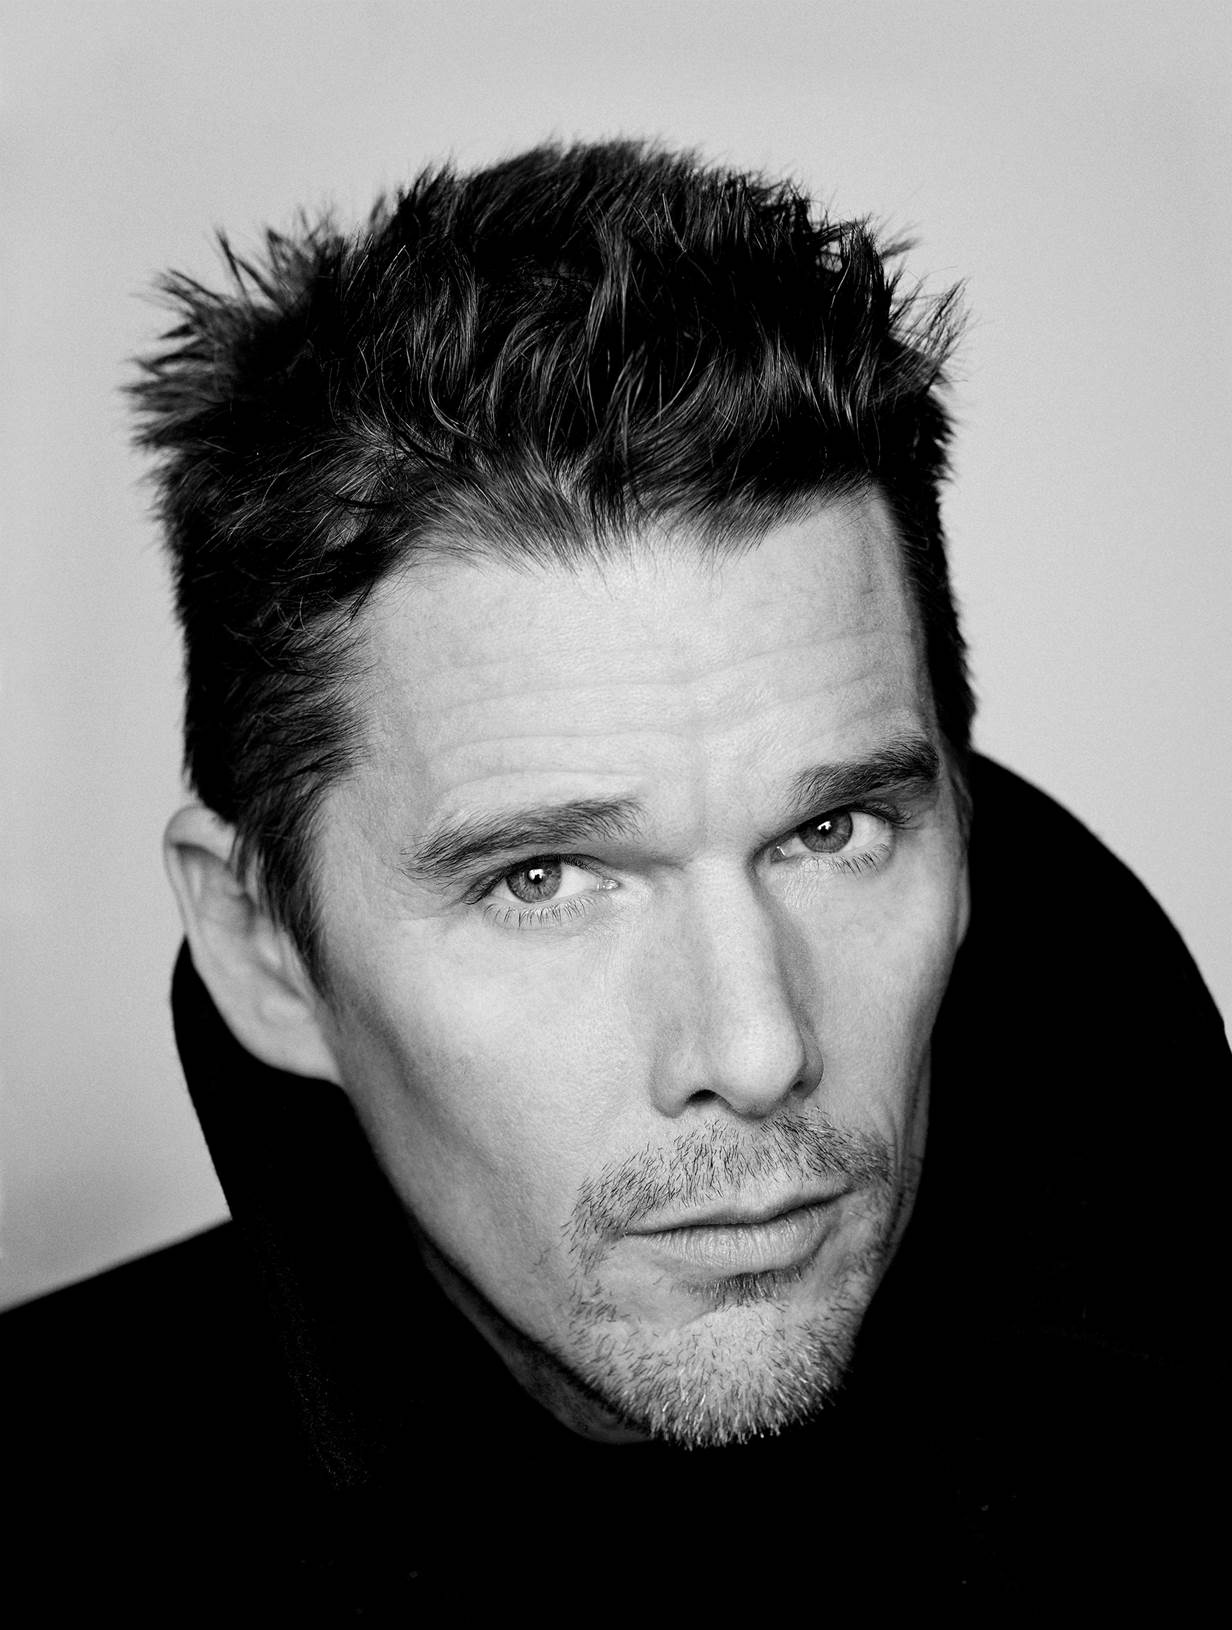 Ethan_Hawke_credits_Sam_Jones.jpg